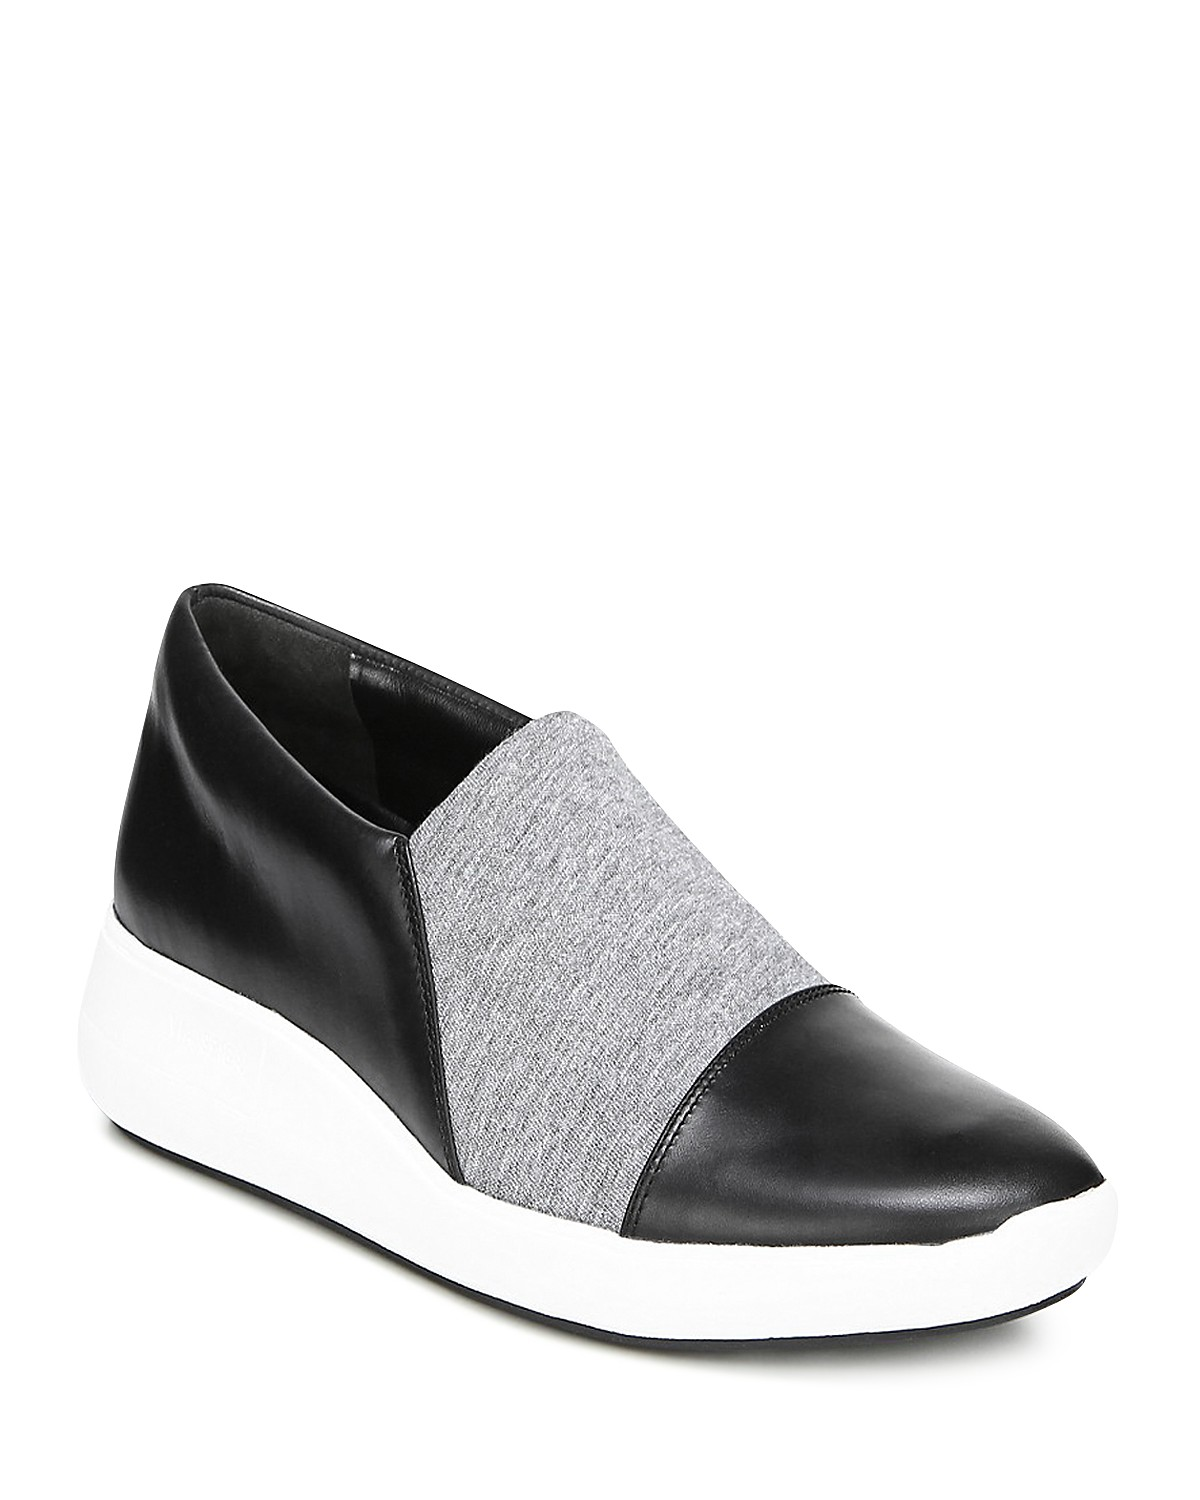 Via Spiga Women's Morgan Leather & Knit Platform Slip-On Sneakers AZOLCtx